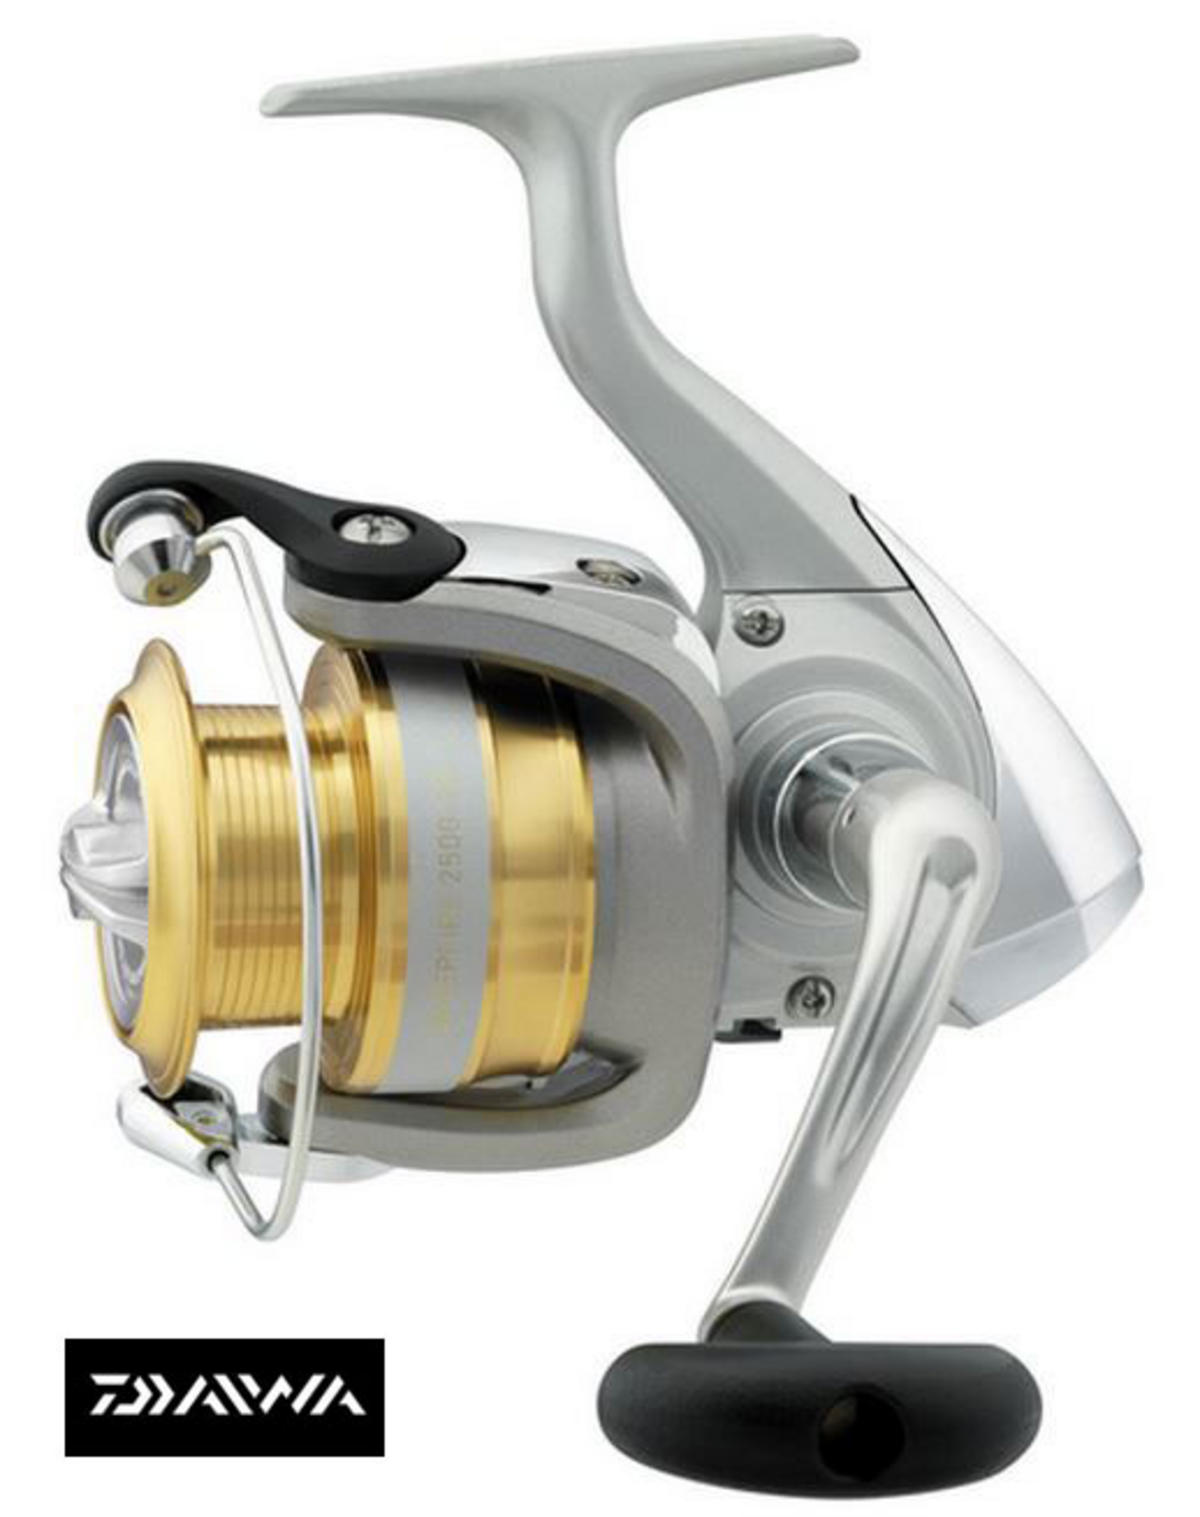 Special Offer Daiwa Sweepfire 1500-2B Spinning Fishing Reel - SW1500-2B